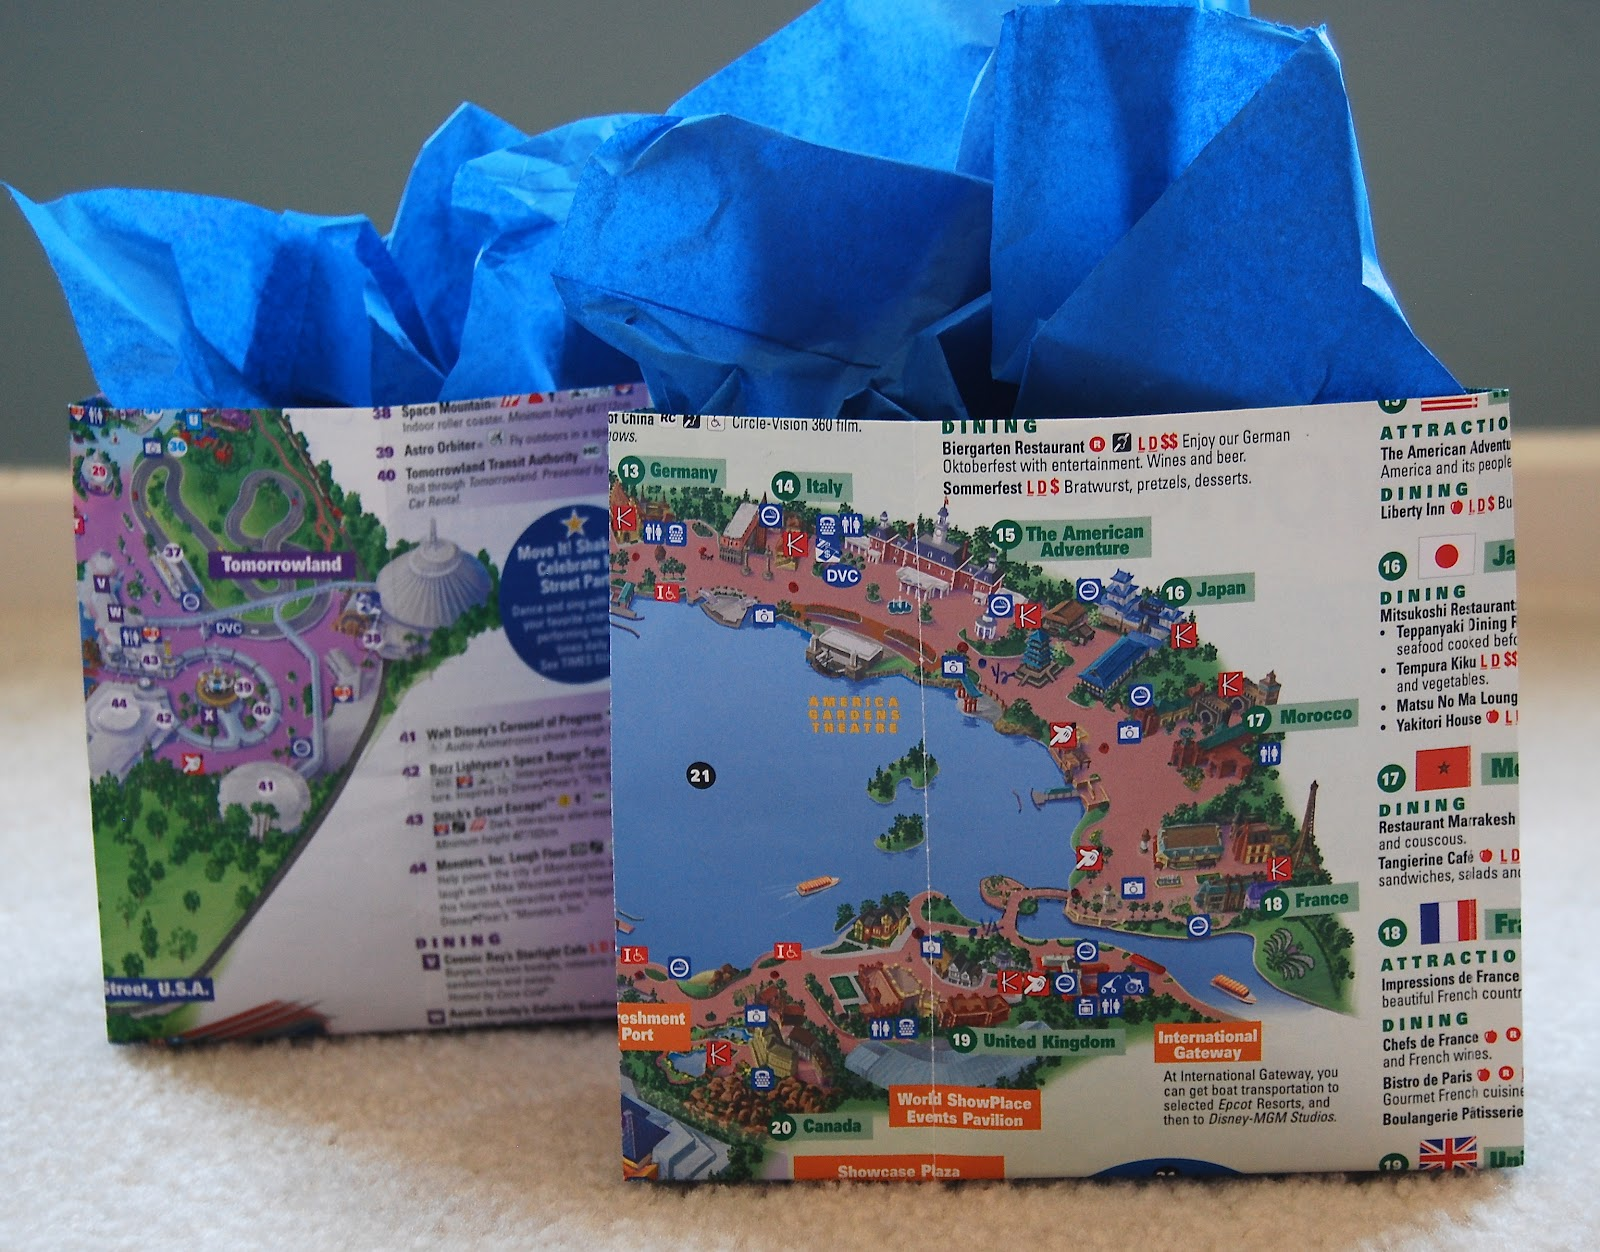 Merryweathers cottage diy disney gift bag from upcycled park map diy disney gift bag from upcycled park map gumiabroncs Image collections